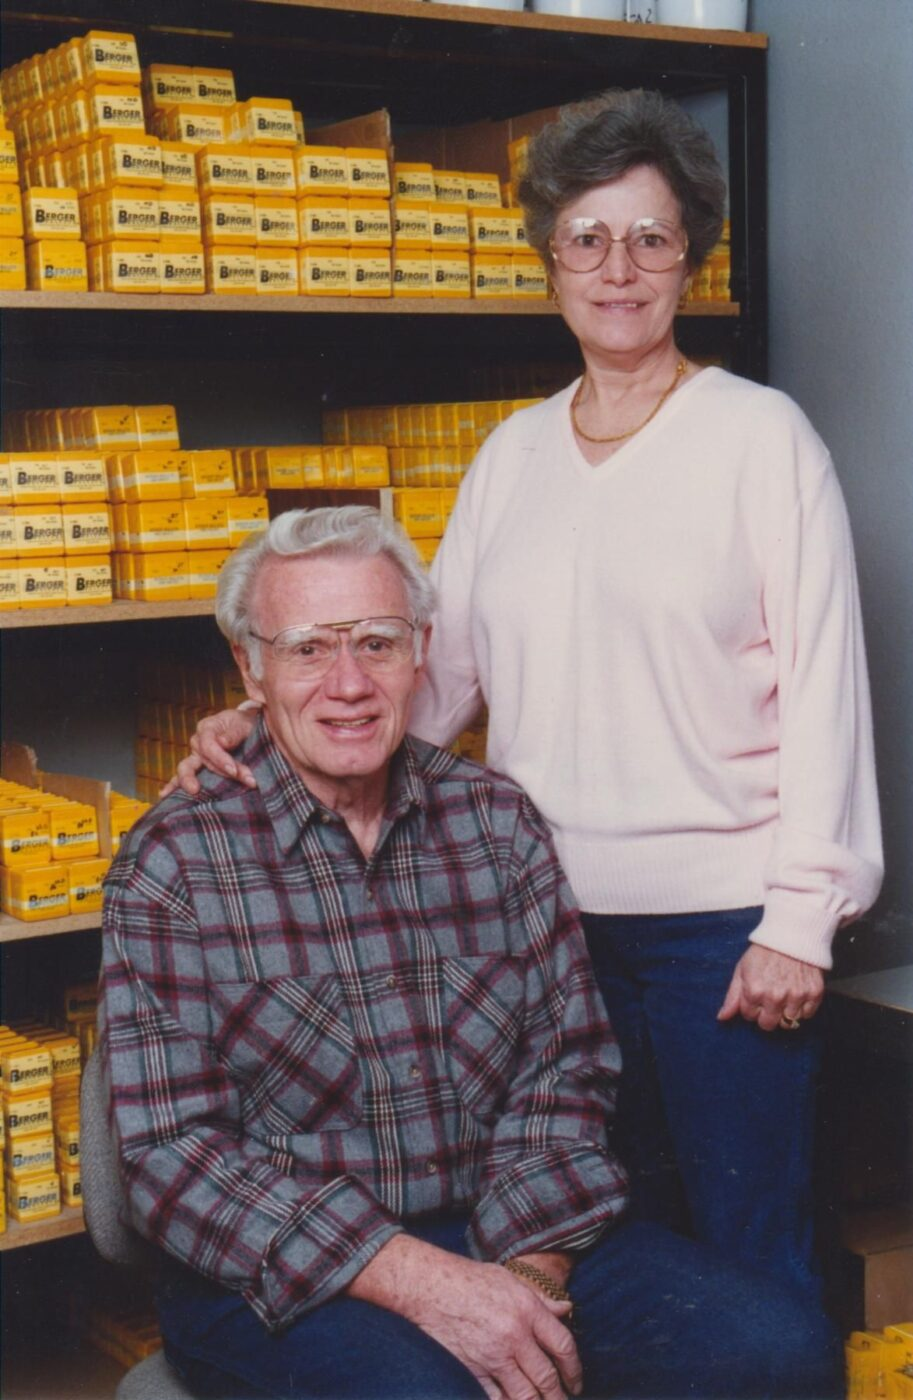 Walt and Eunice Berger